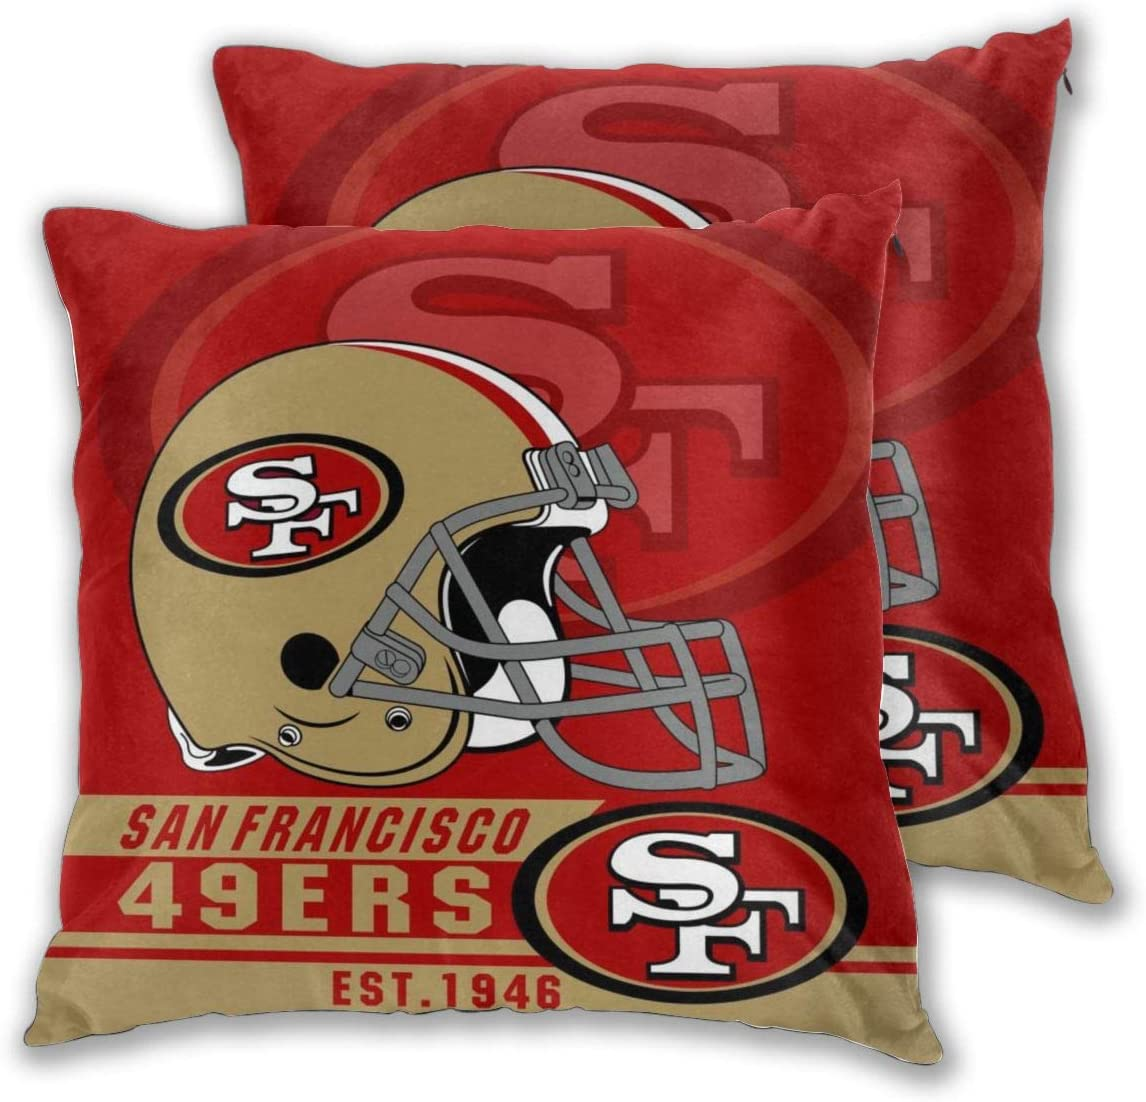 Marrytiny Custom Colorful Set of 2 Pillowcase San Francisco 49ers American Football Team Bedding Pillow Covers Pillow Cases for Sofa Bedroom Home Decorative - 18x18 Inches